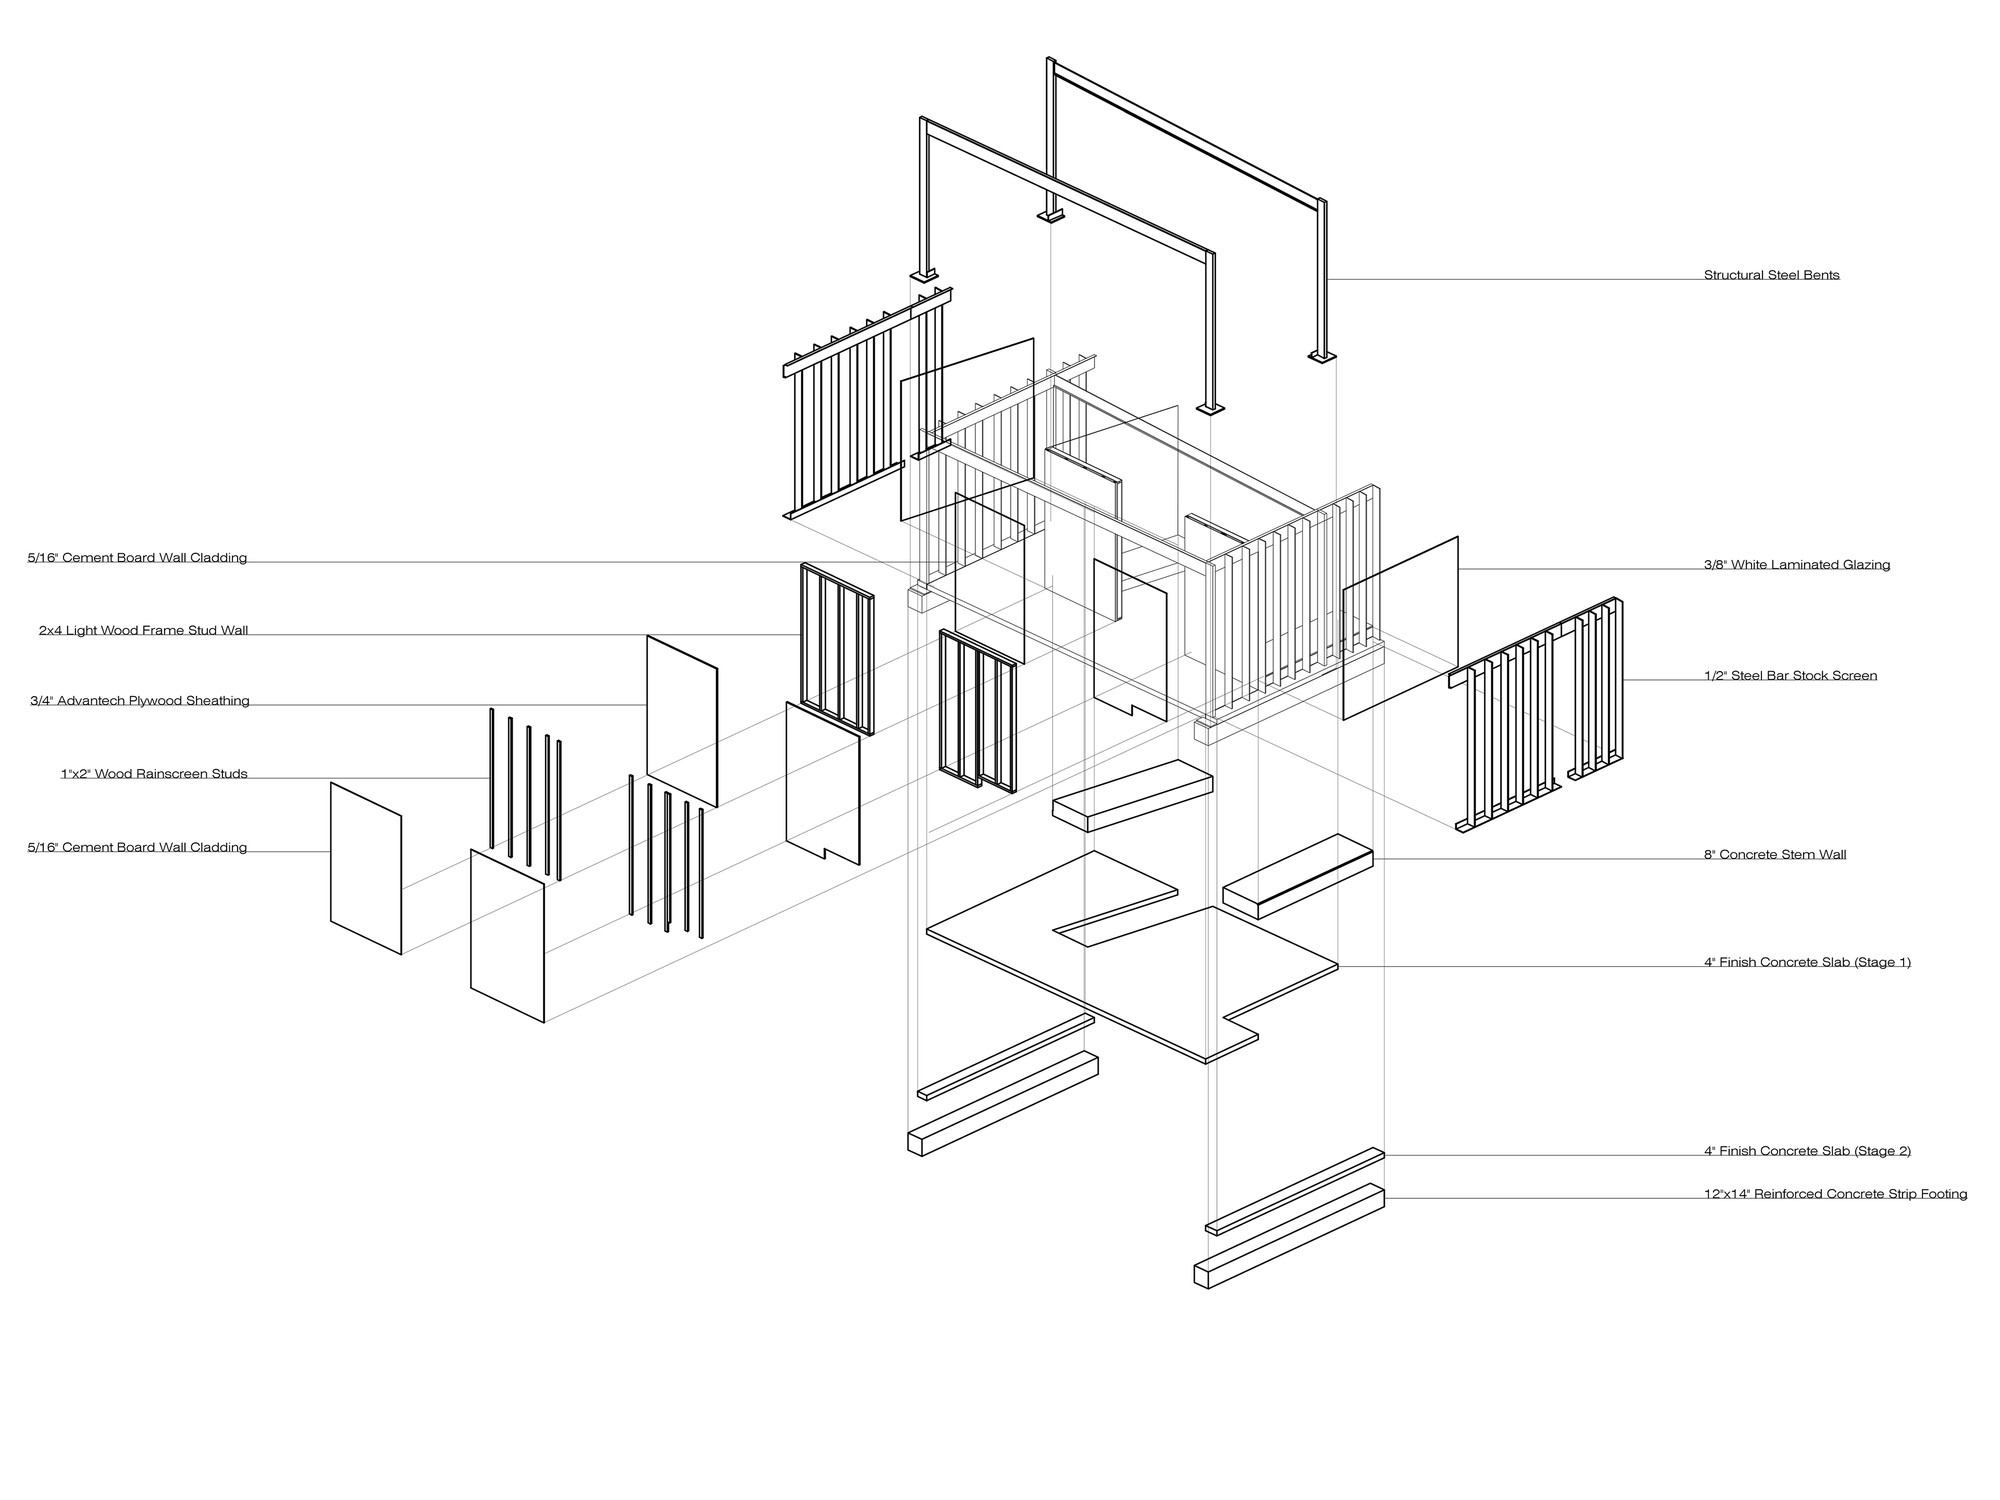 exploded axon diagram wiring for air compressor pressure switch sharon fieldhouse design buildlab archdaily